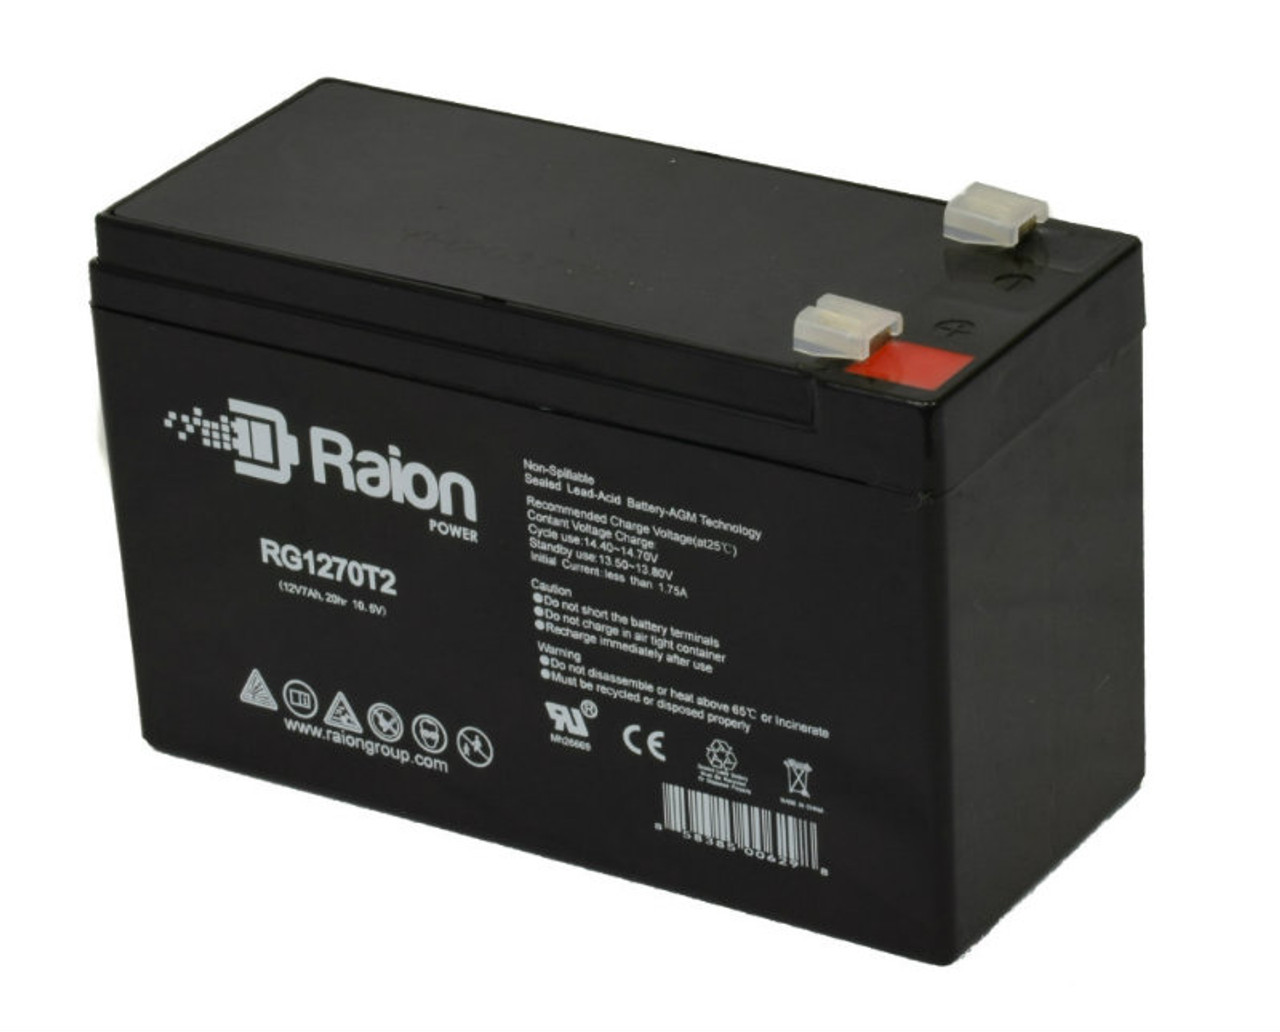 Raion Power RG1270T1 Replacement Battery for Power Sonic PS-1270-F1